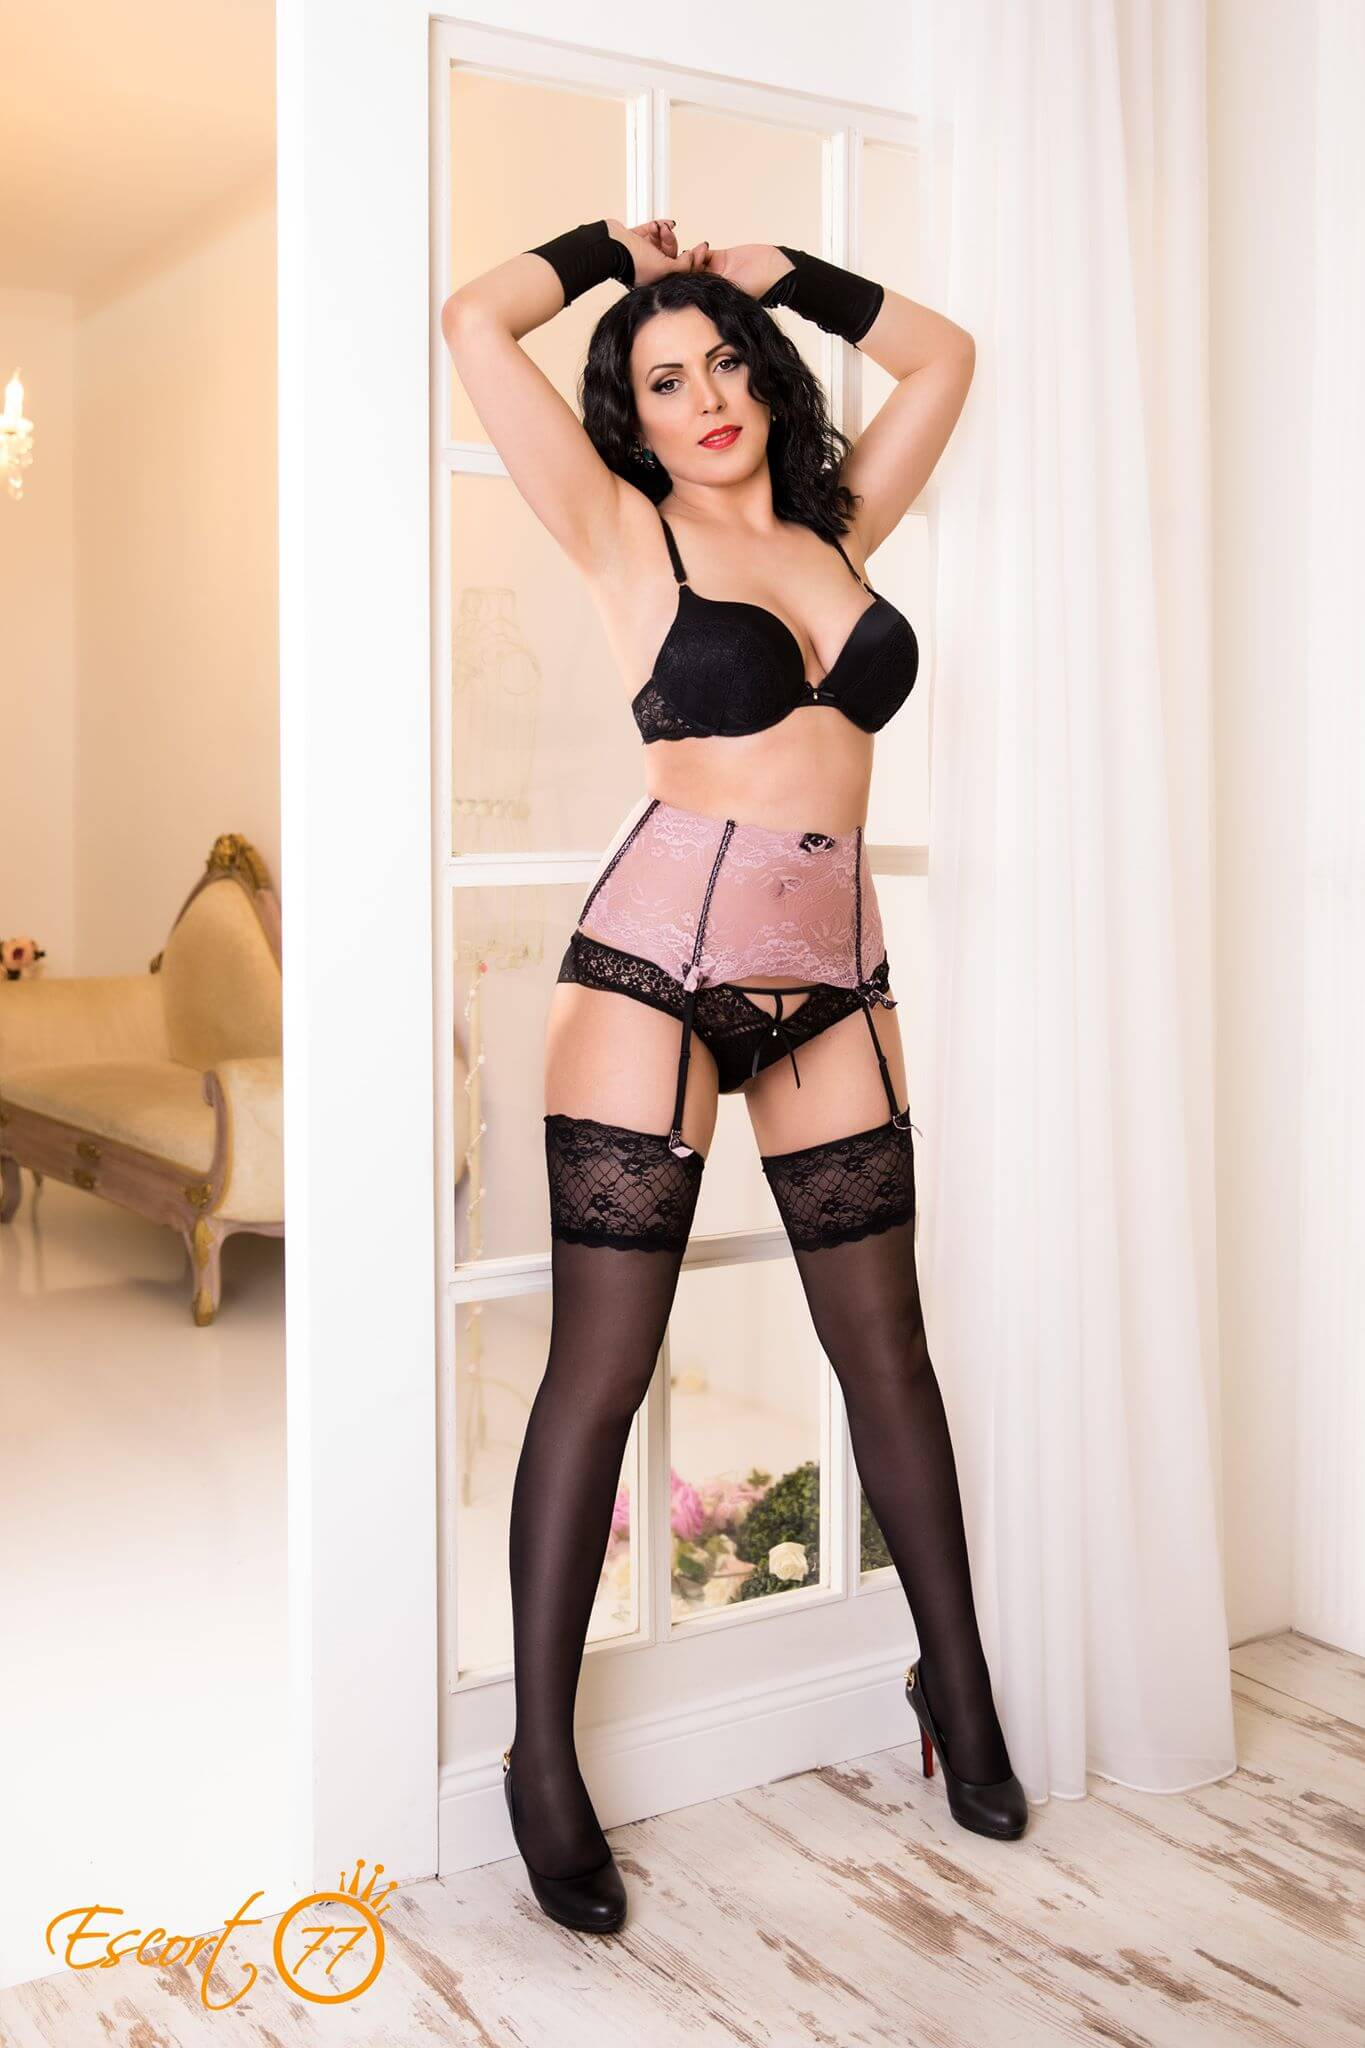 Escort Berlin Privatmodell Helena